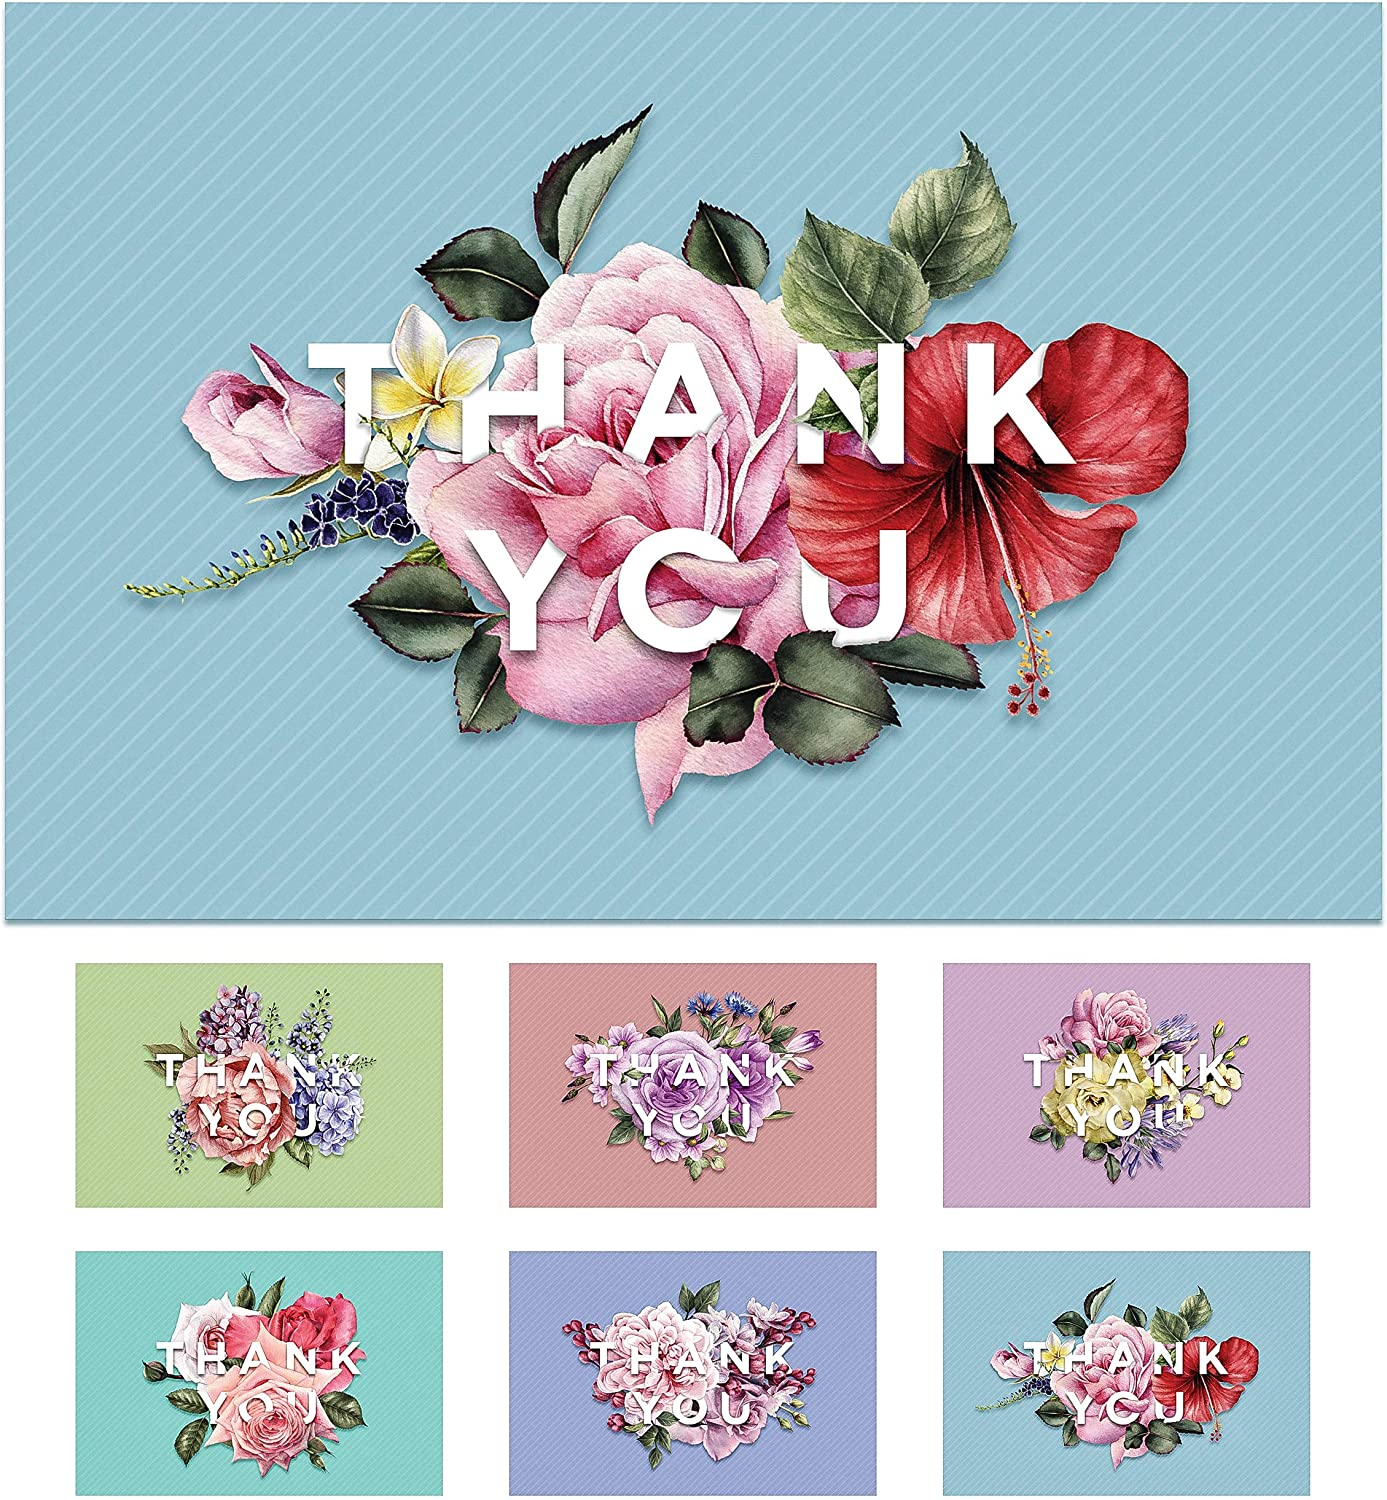 Thank You Cards - 48 Count - Greeting Notes with Envelopes - 4x6 inches - Floral Thank You Cards - Blank Inside - For Wedding, Baby Shower, Bridal Party, Business, Graduation, Sympathy - Bulk